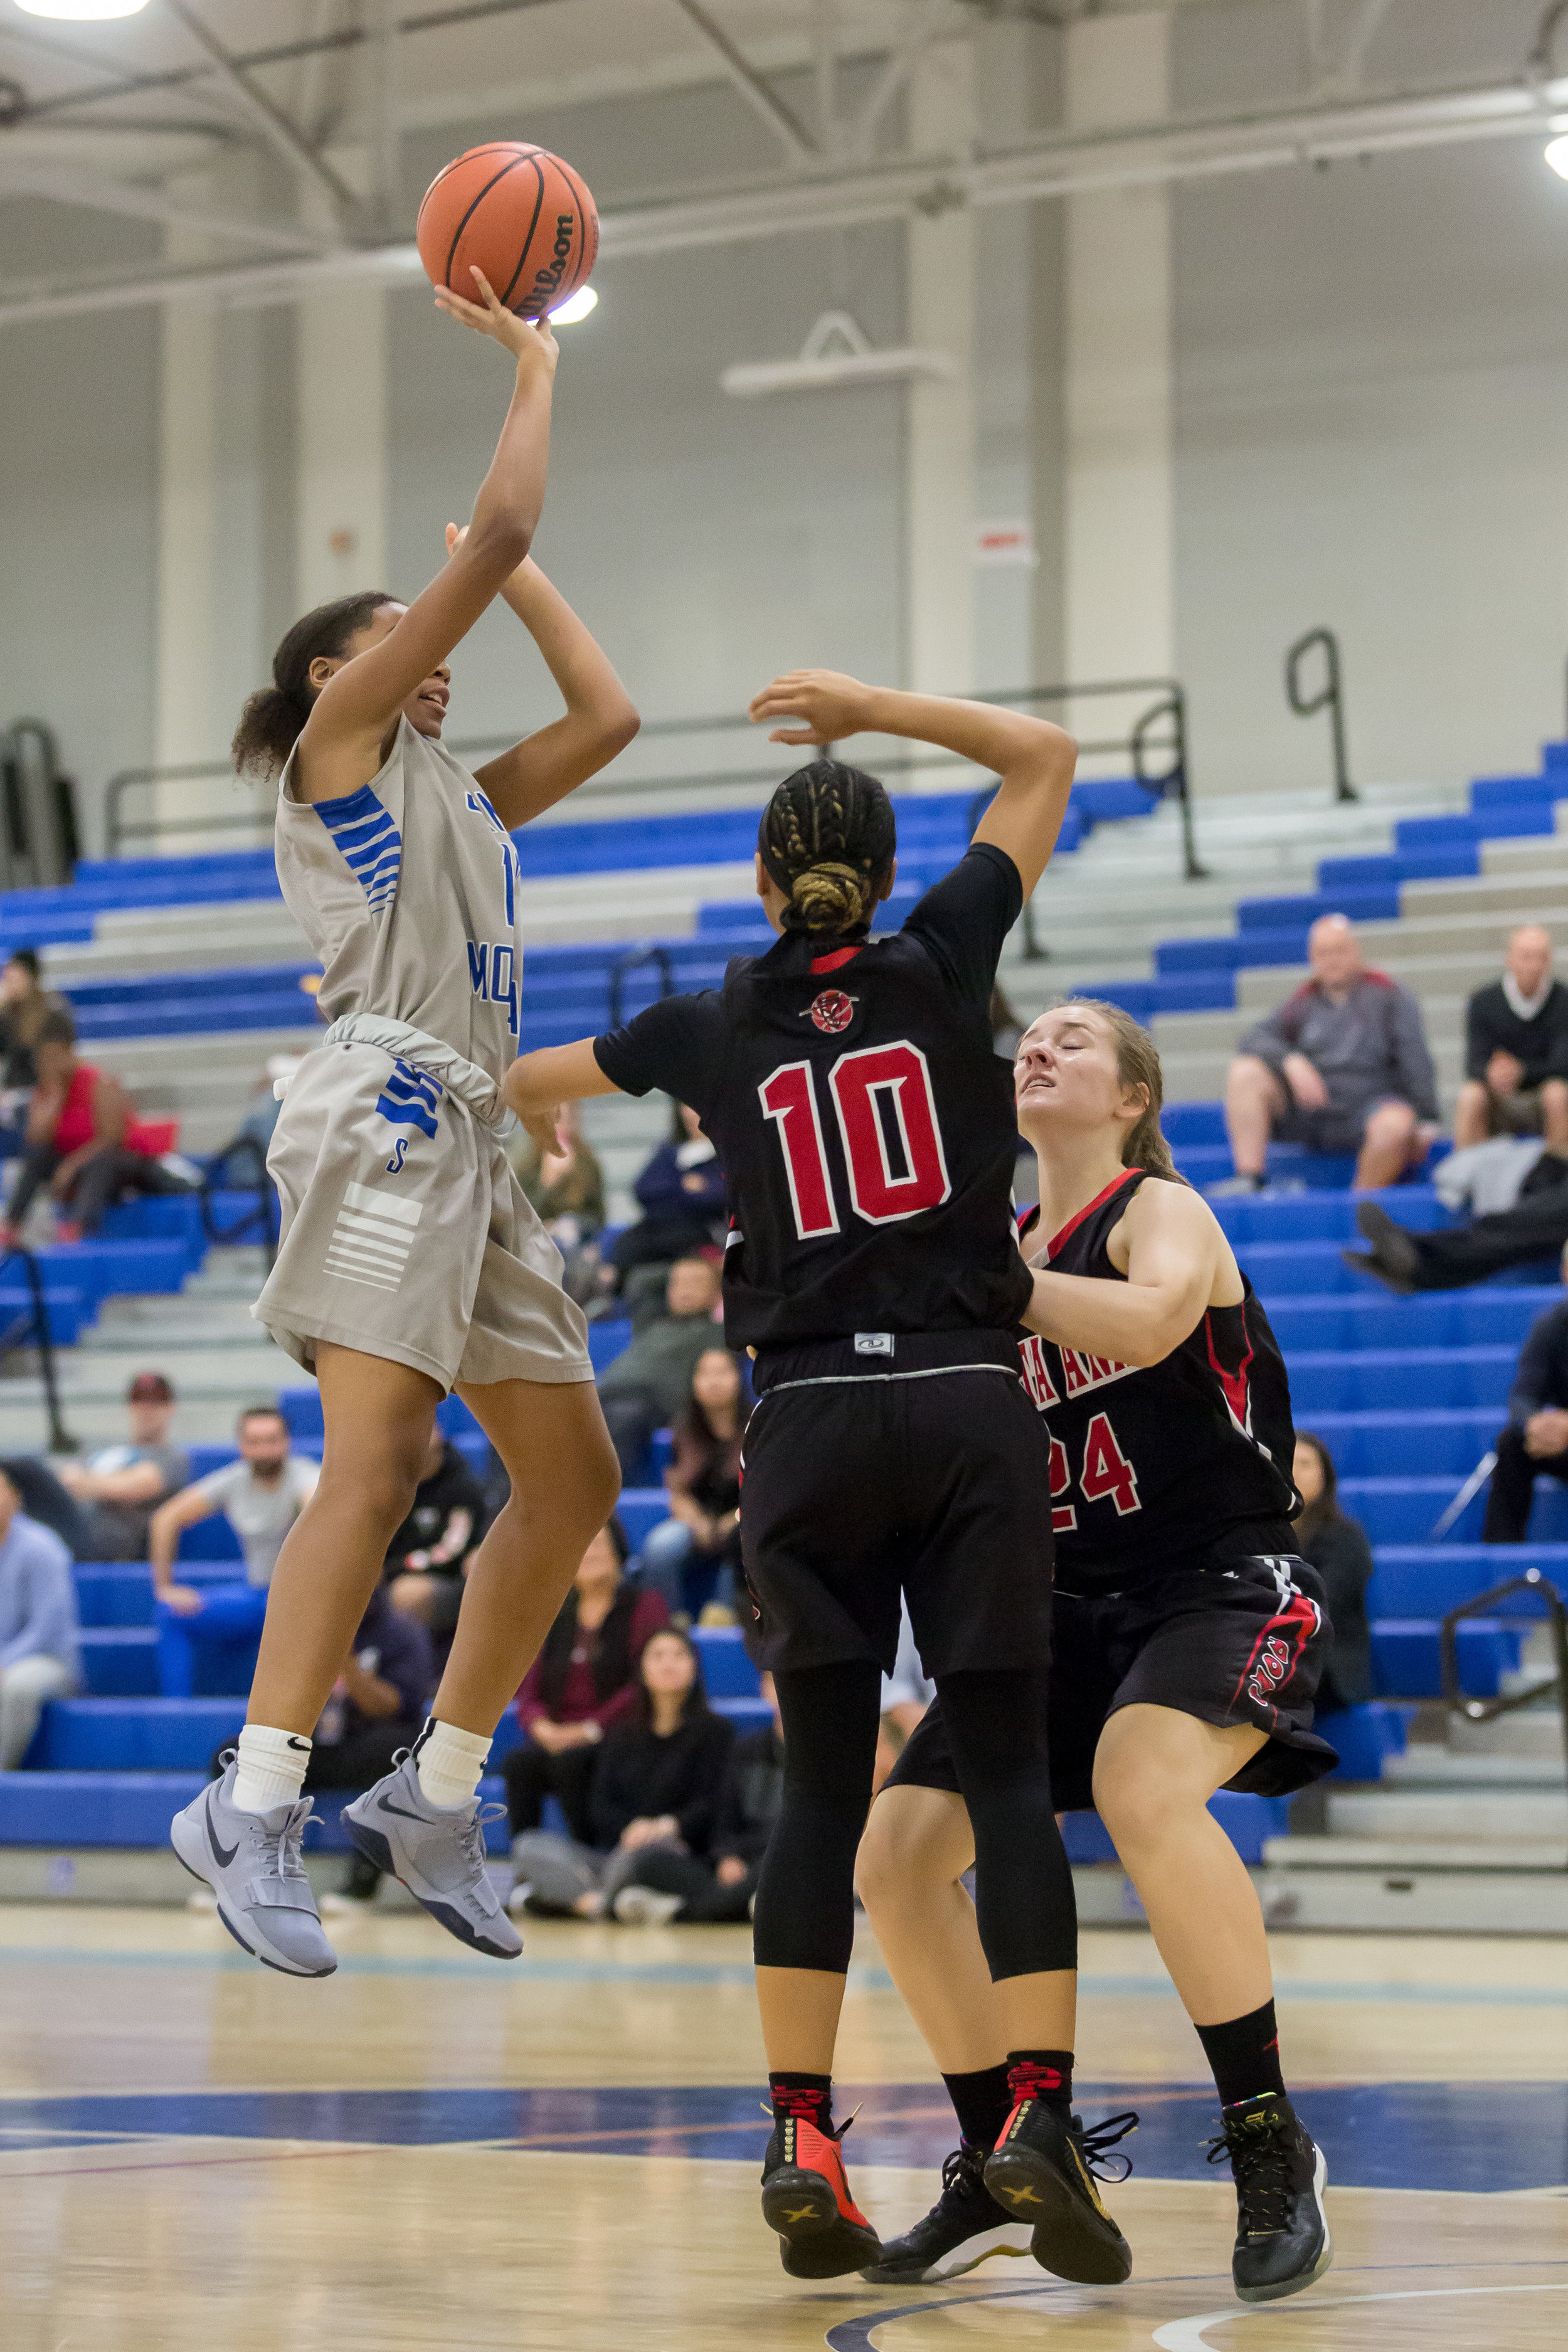 Forward Jazzmin Oddie (12) of Santa Monica College shoots a floater over  Guard Candace Black (10) and Guard Alexis Smith (24) of Santa Ana College. Santa Monica College Corsairs win the game 63-54 against Santa Ana College. On Saturday, November 4th, 2017 at the SMC Pavilion on the Santa Monica College Main Campus in Santa Monica, California. (Photo by Yuki Iwamura)